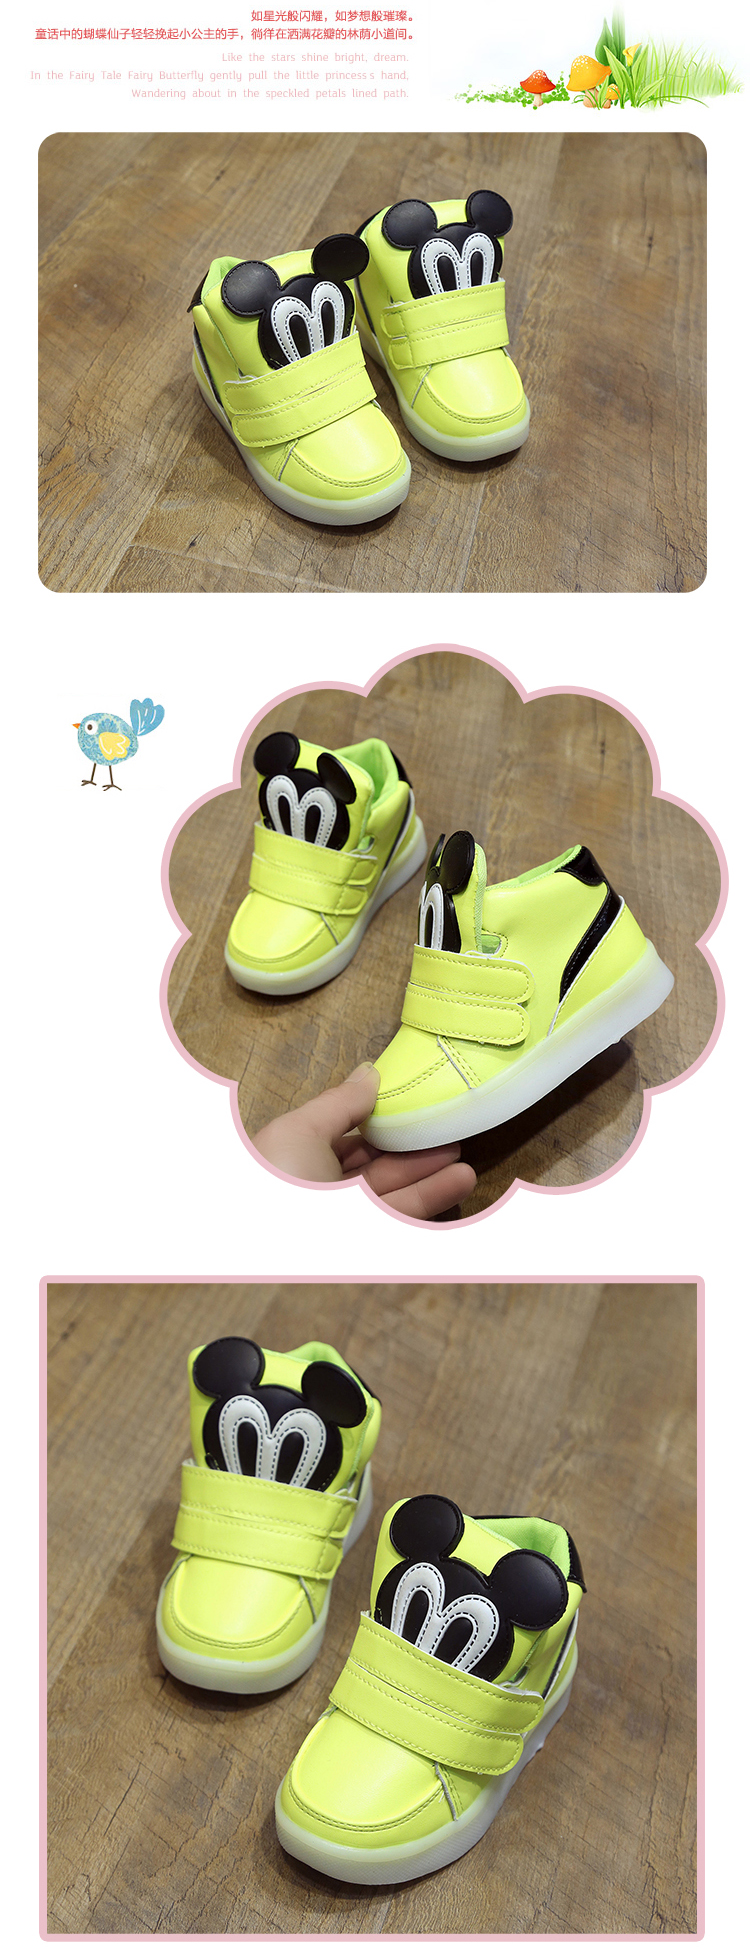 Children Shoes With Light Led Boys Sneakers 2017 New Spring Cartoon Clarette Cia Brown Lighted Sport Fashion Girls Chaussure Enfant Us299